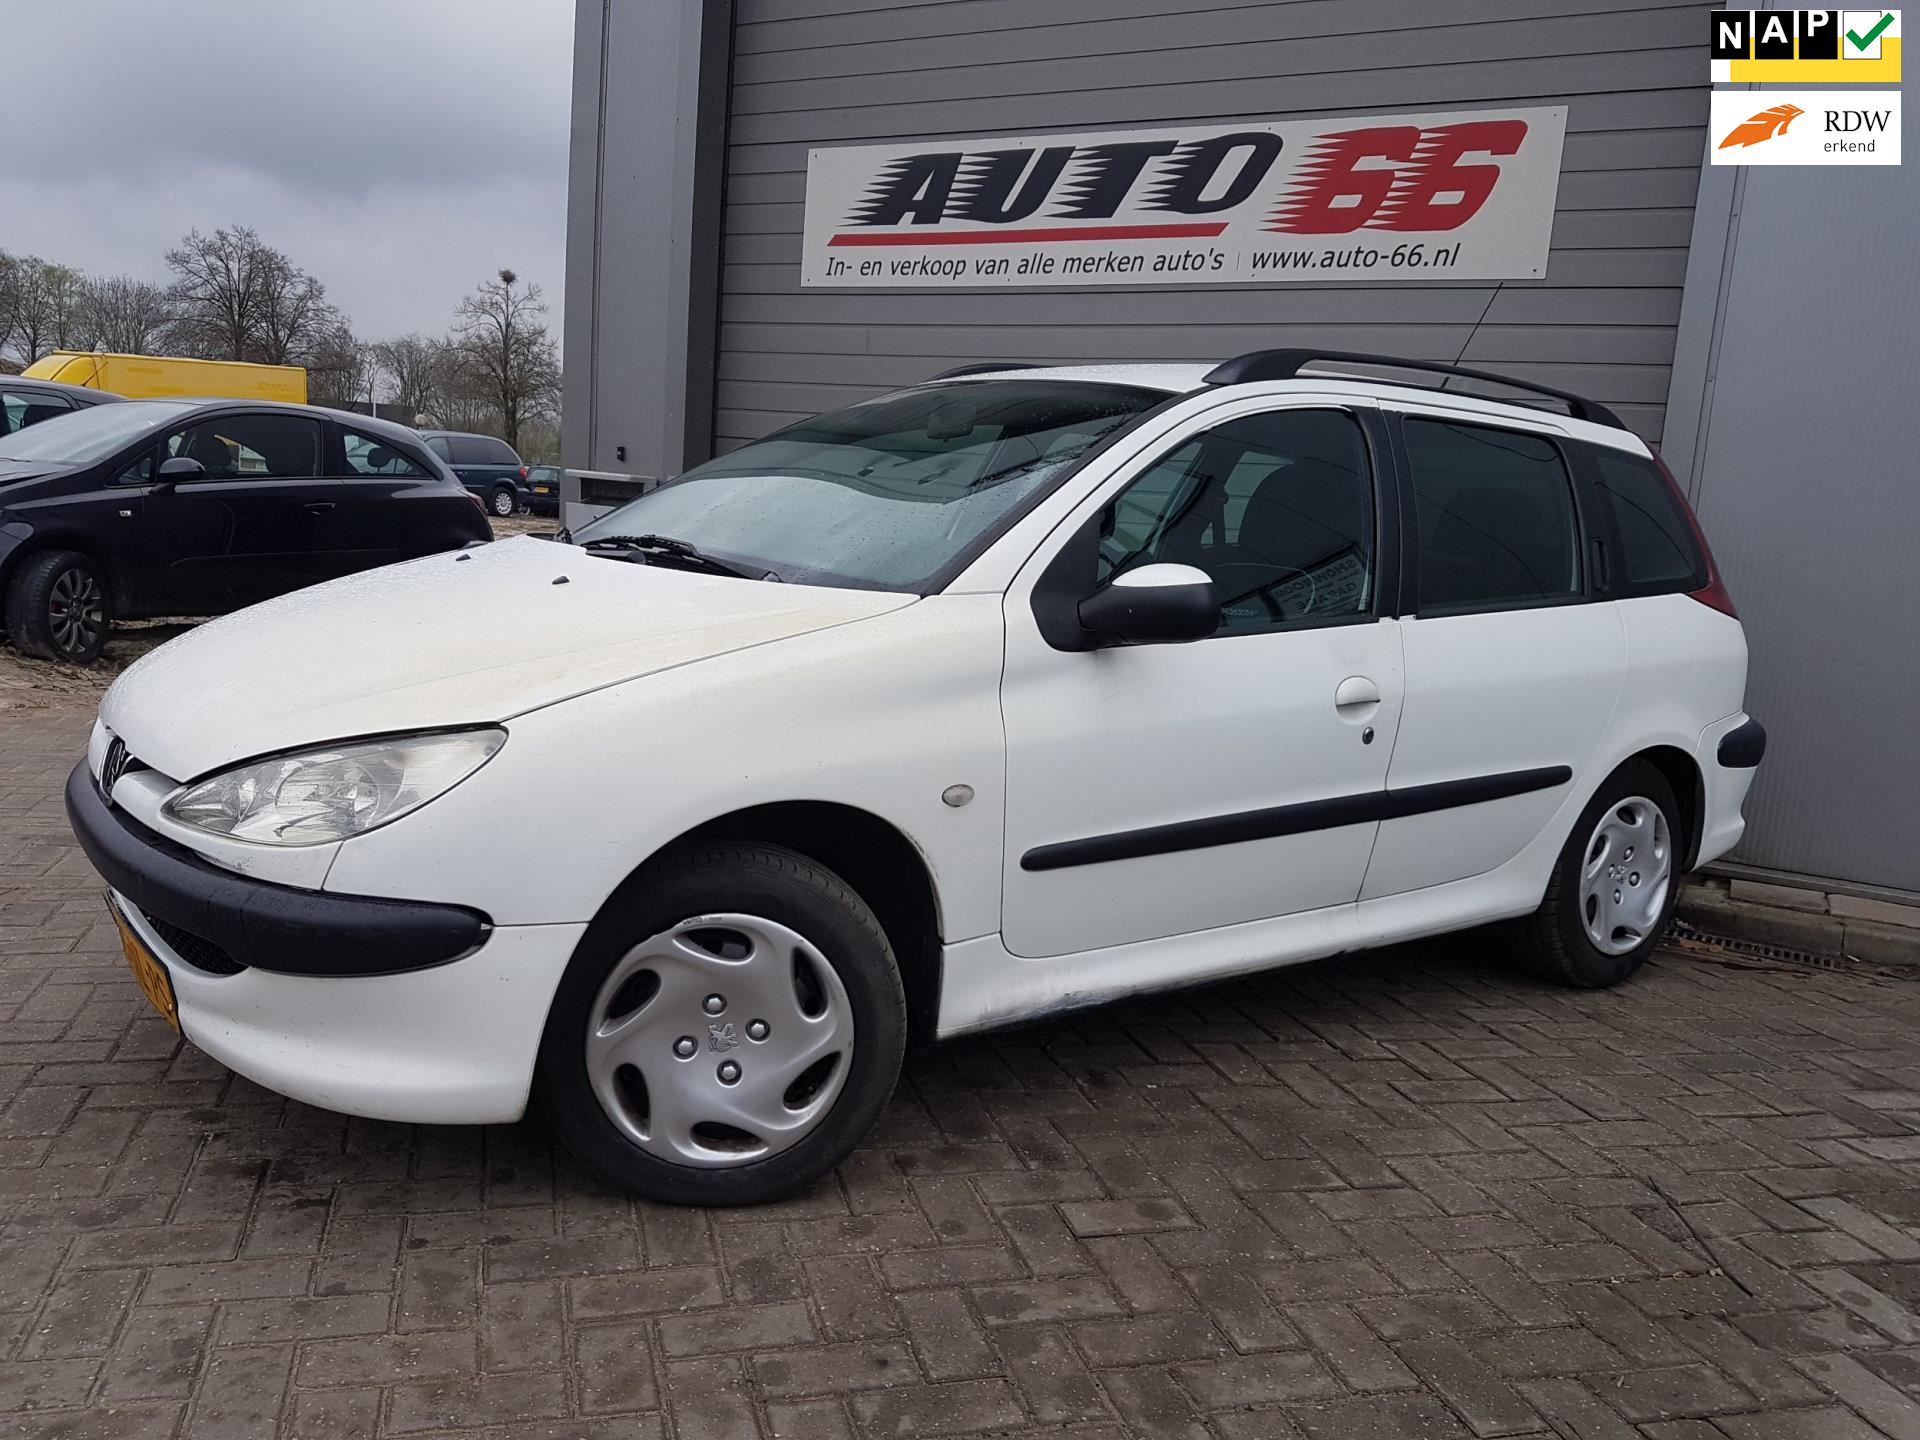 Peugeot 206 SW occasion - Auto 66 BV